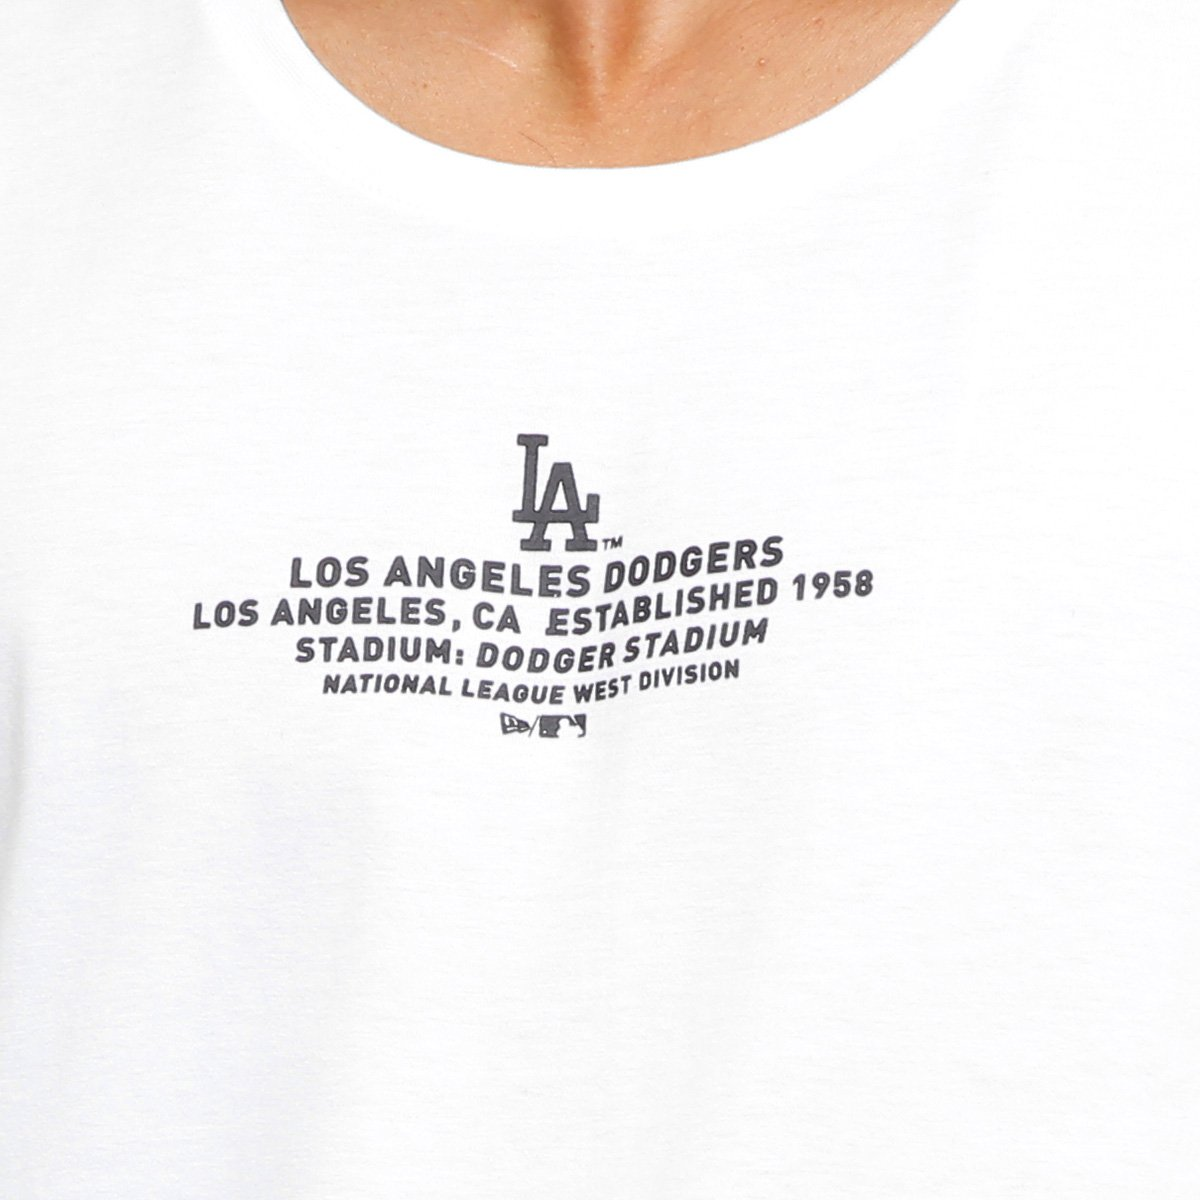 Angeles Era New 2023 Dodgers Los Lic Camiseta Branco Masculina 5ZwIHqI